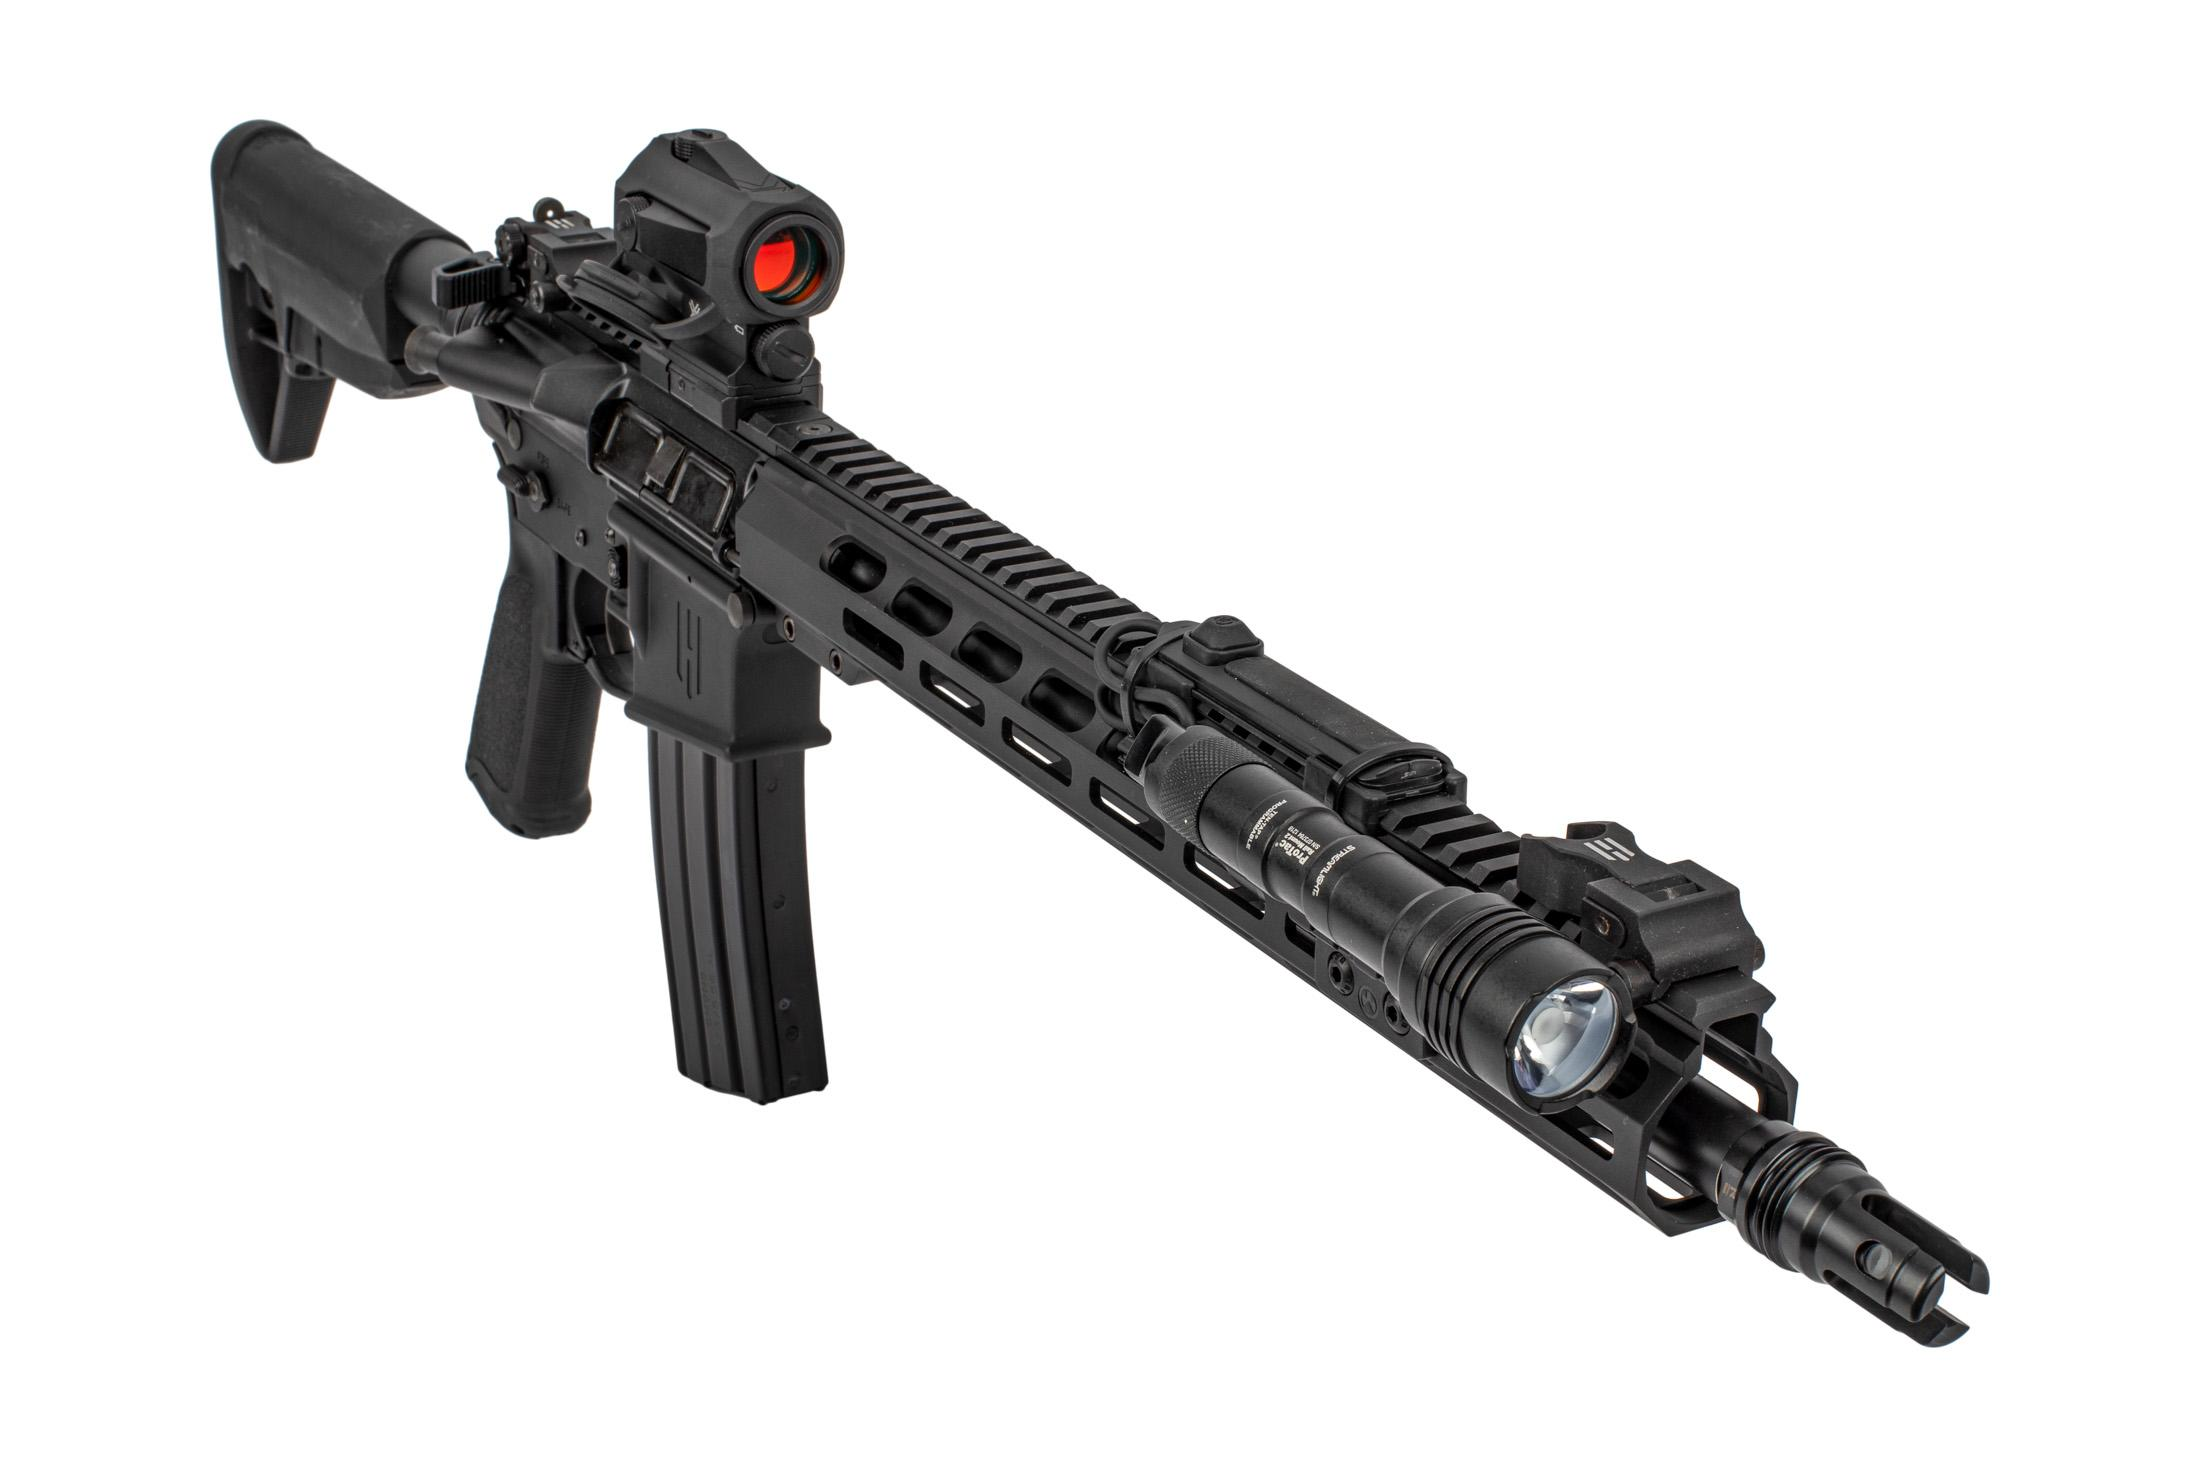 Head Down OTG AR-15 complete rifle features a 1000 Lumen weapon light and tape switch